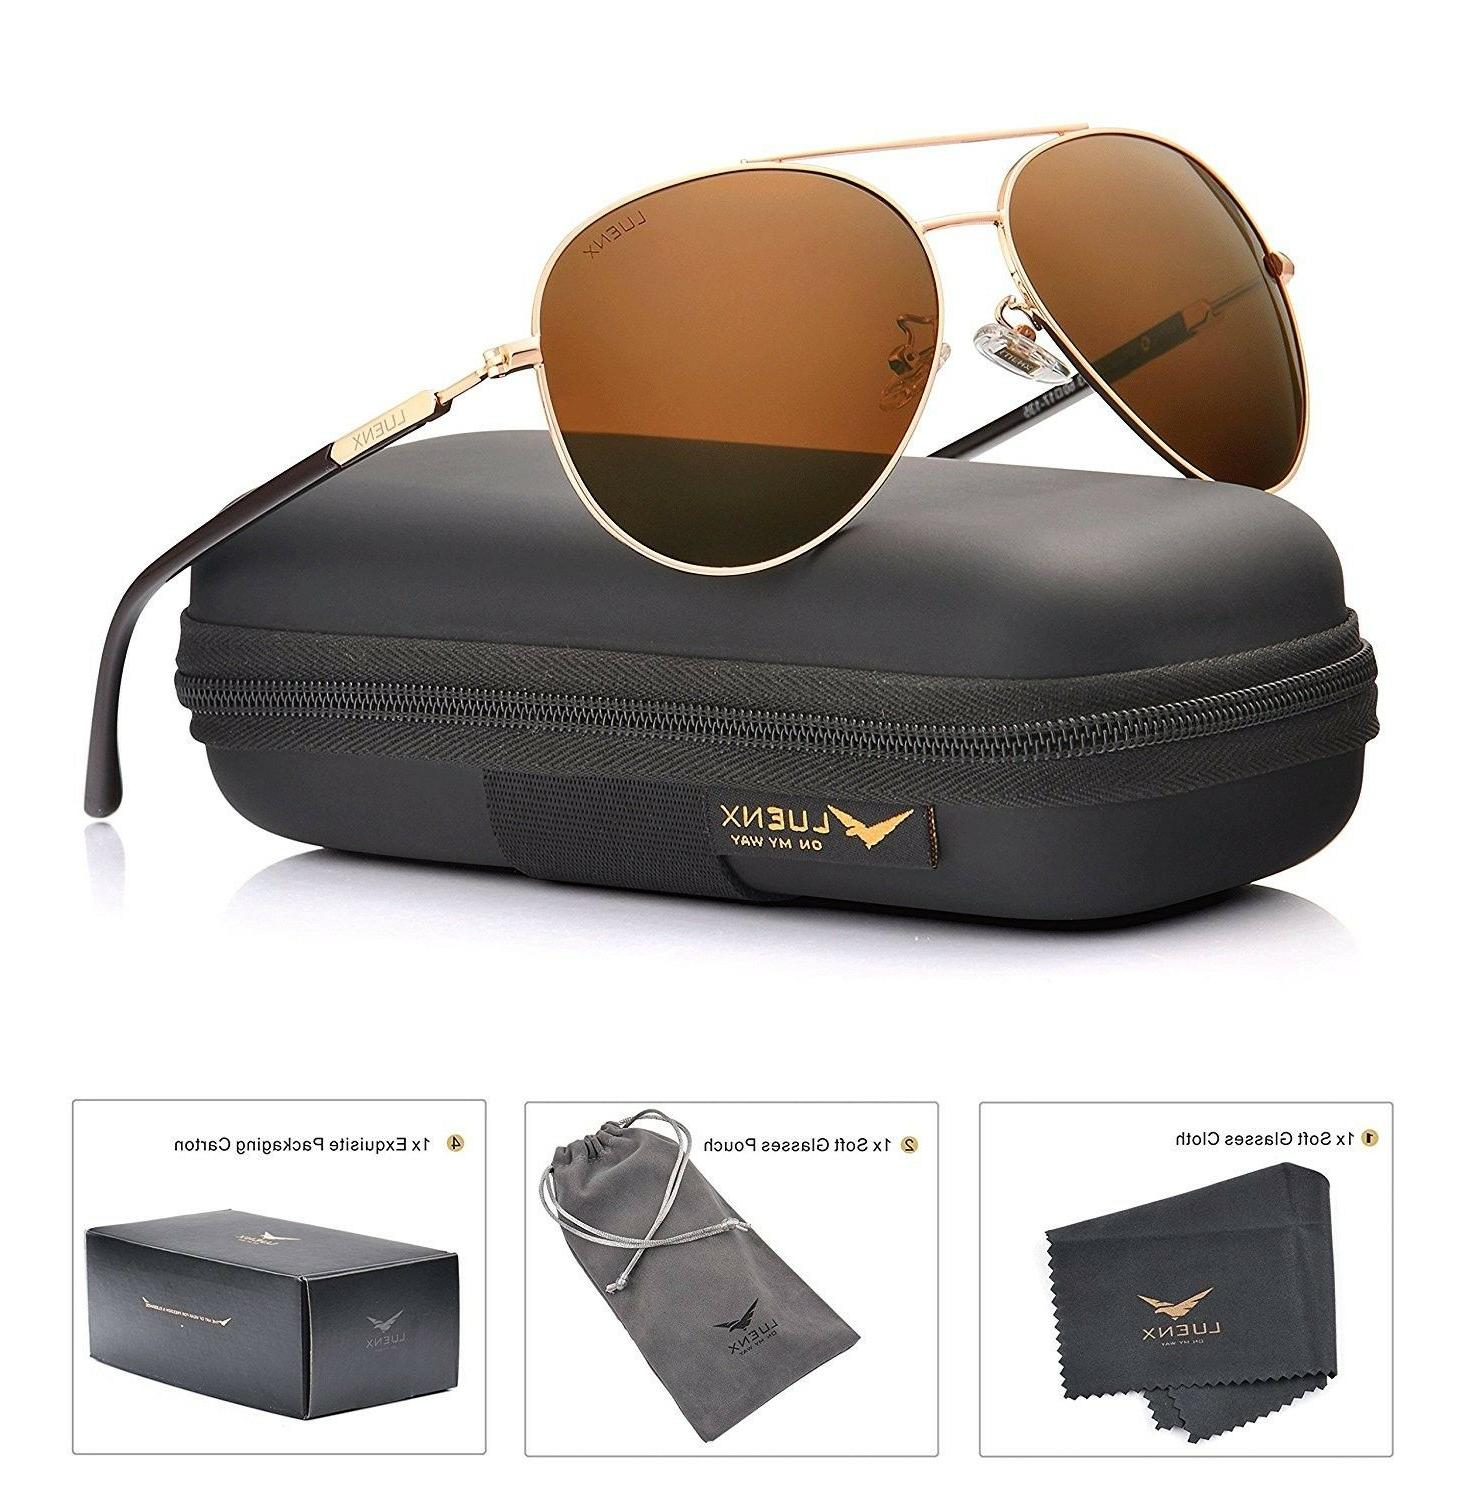 LUENX Aviator Sunglasses Mens Polarized with Case - UV 400 n